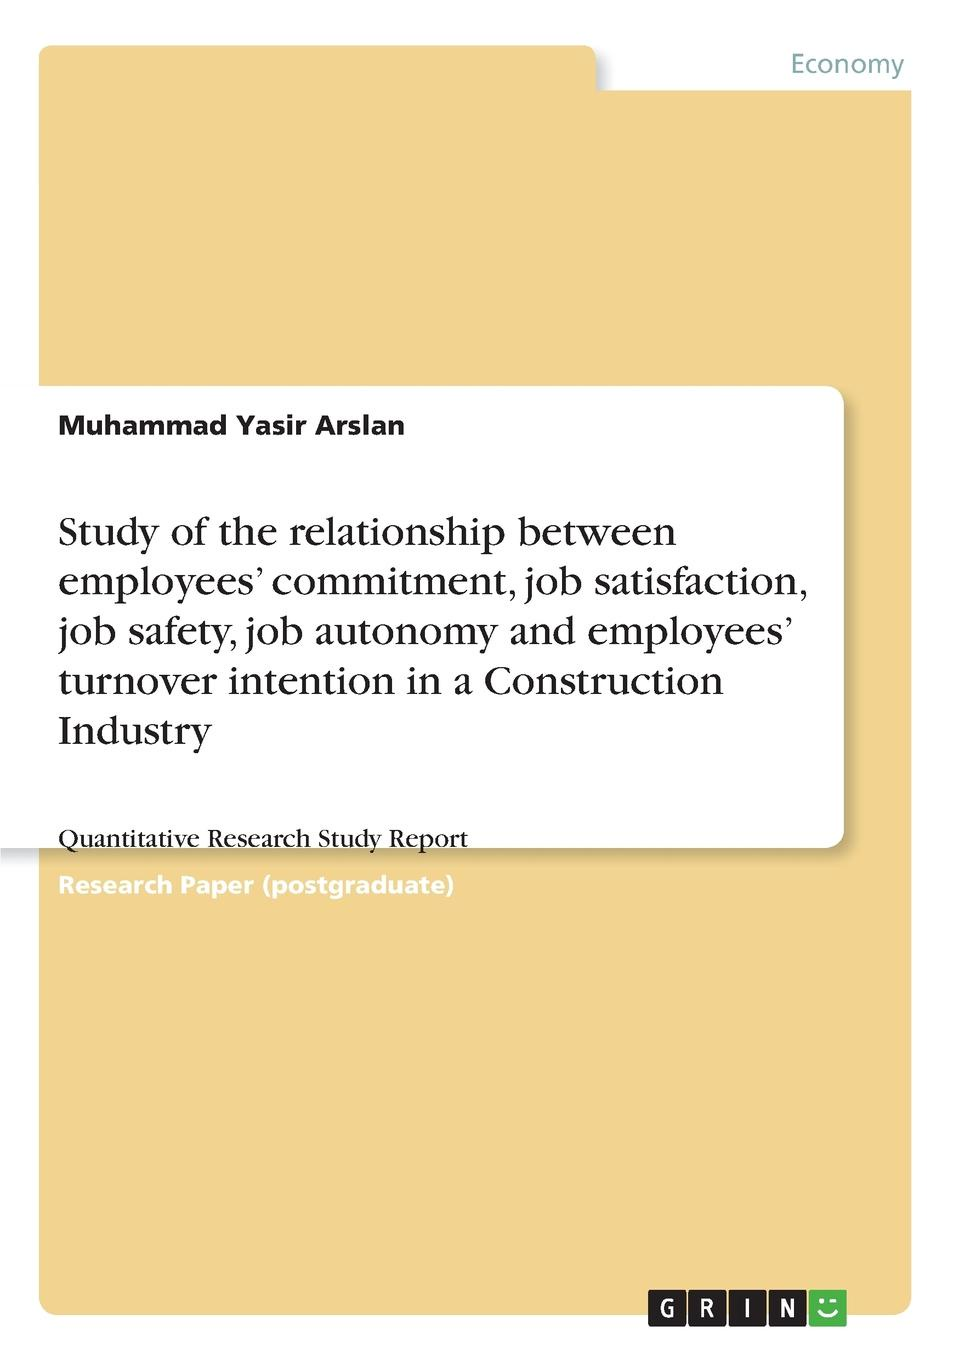 Muhammad Yasir Arslan Study of the relationship between employees. commitment, job satisfaction, job safety, job autonomy and employees. turnover intention in a Construction Industry the relationship between communication satisfaction and teamworking